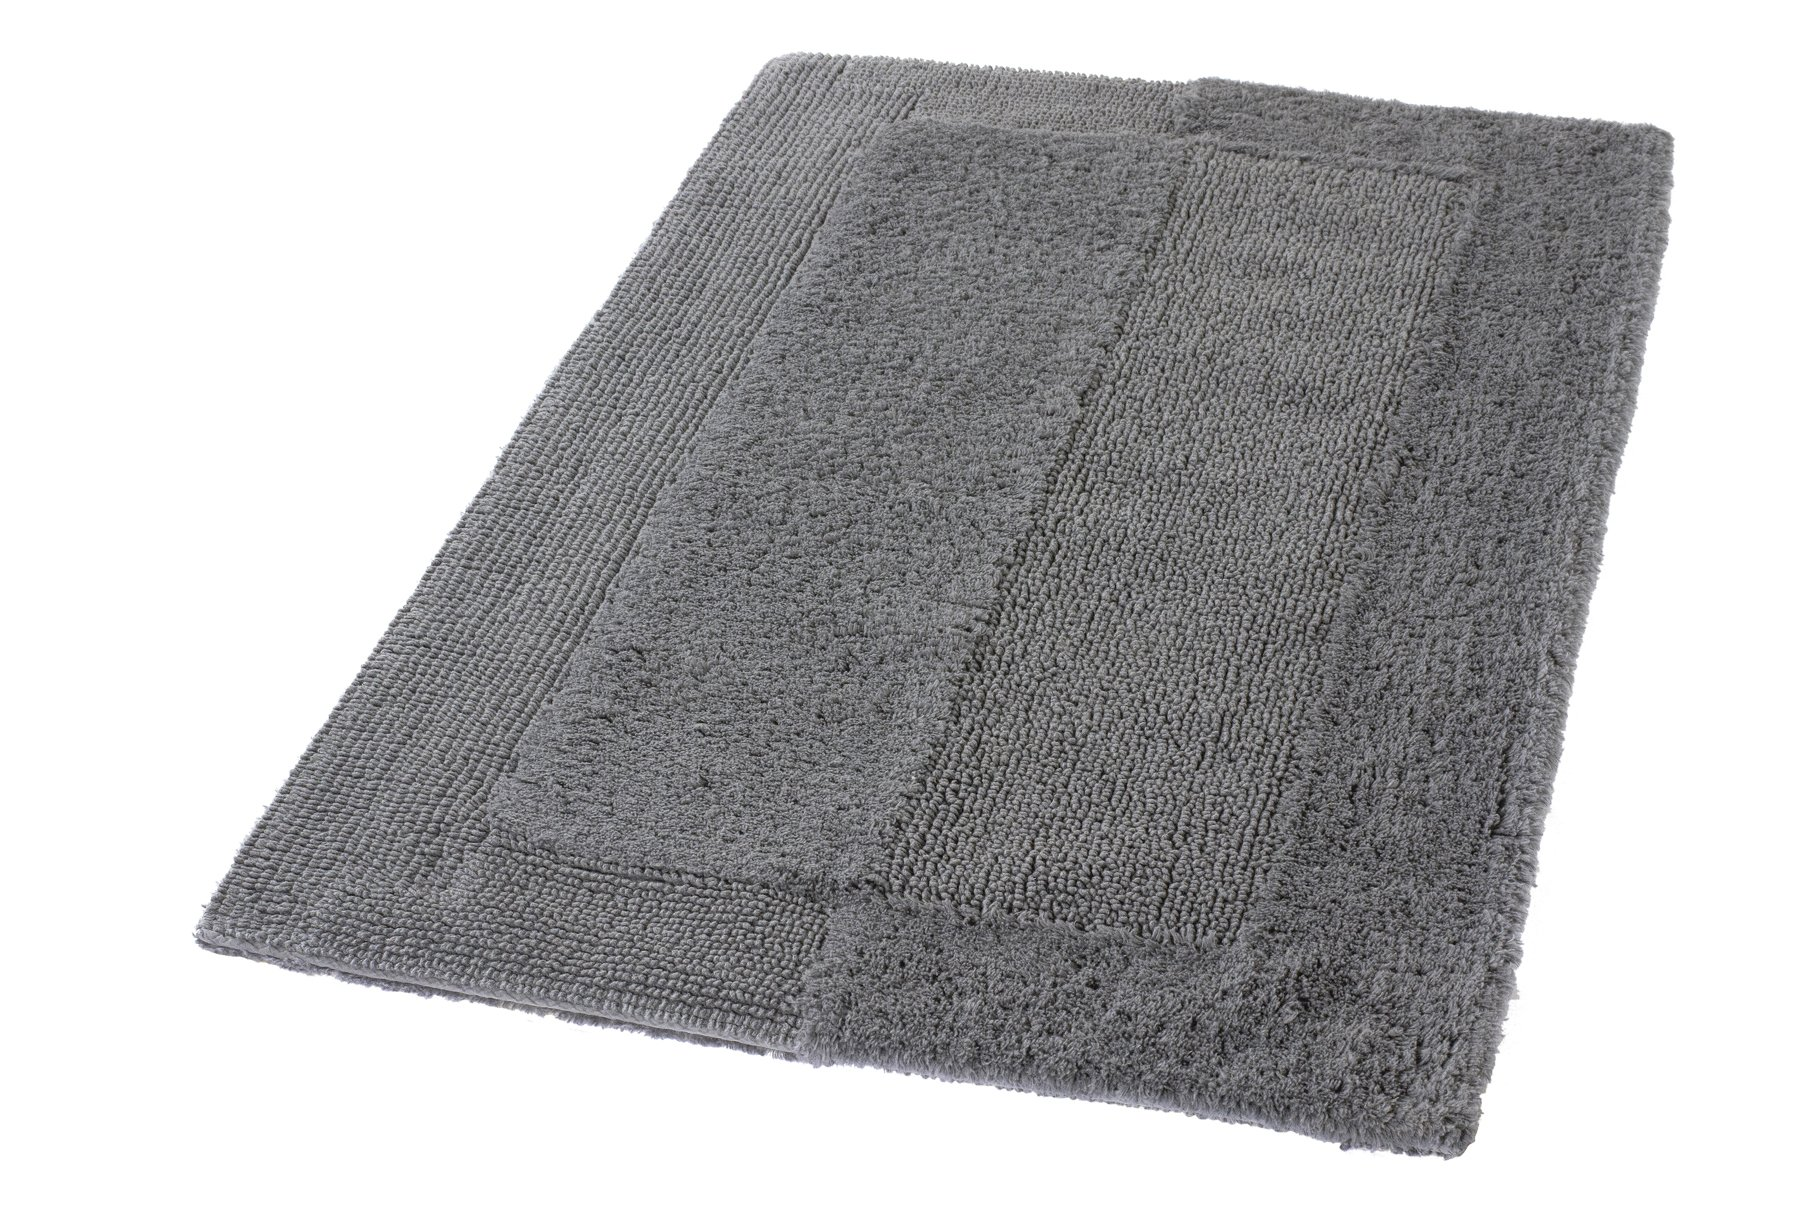 Kleine Wolke Eco Living Havanna Reversible Cotton Bathroom Rug (33.5x59.1in, Slate Grey) by Kleine Wolke